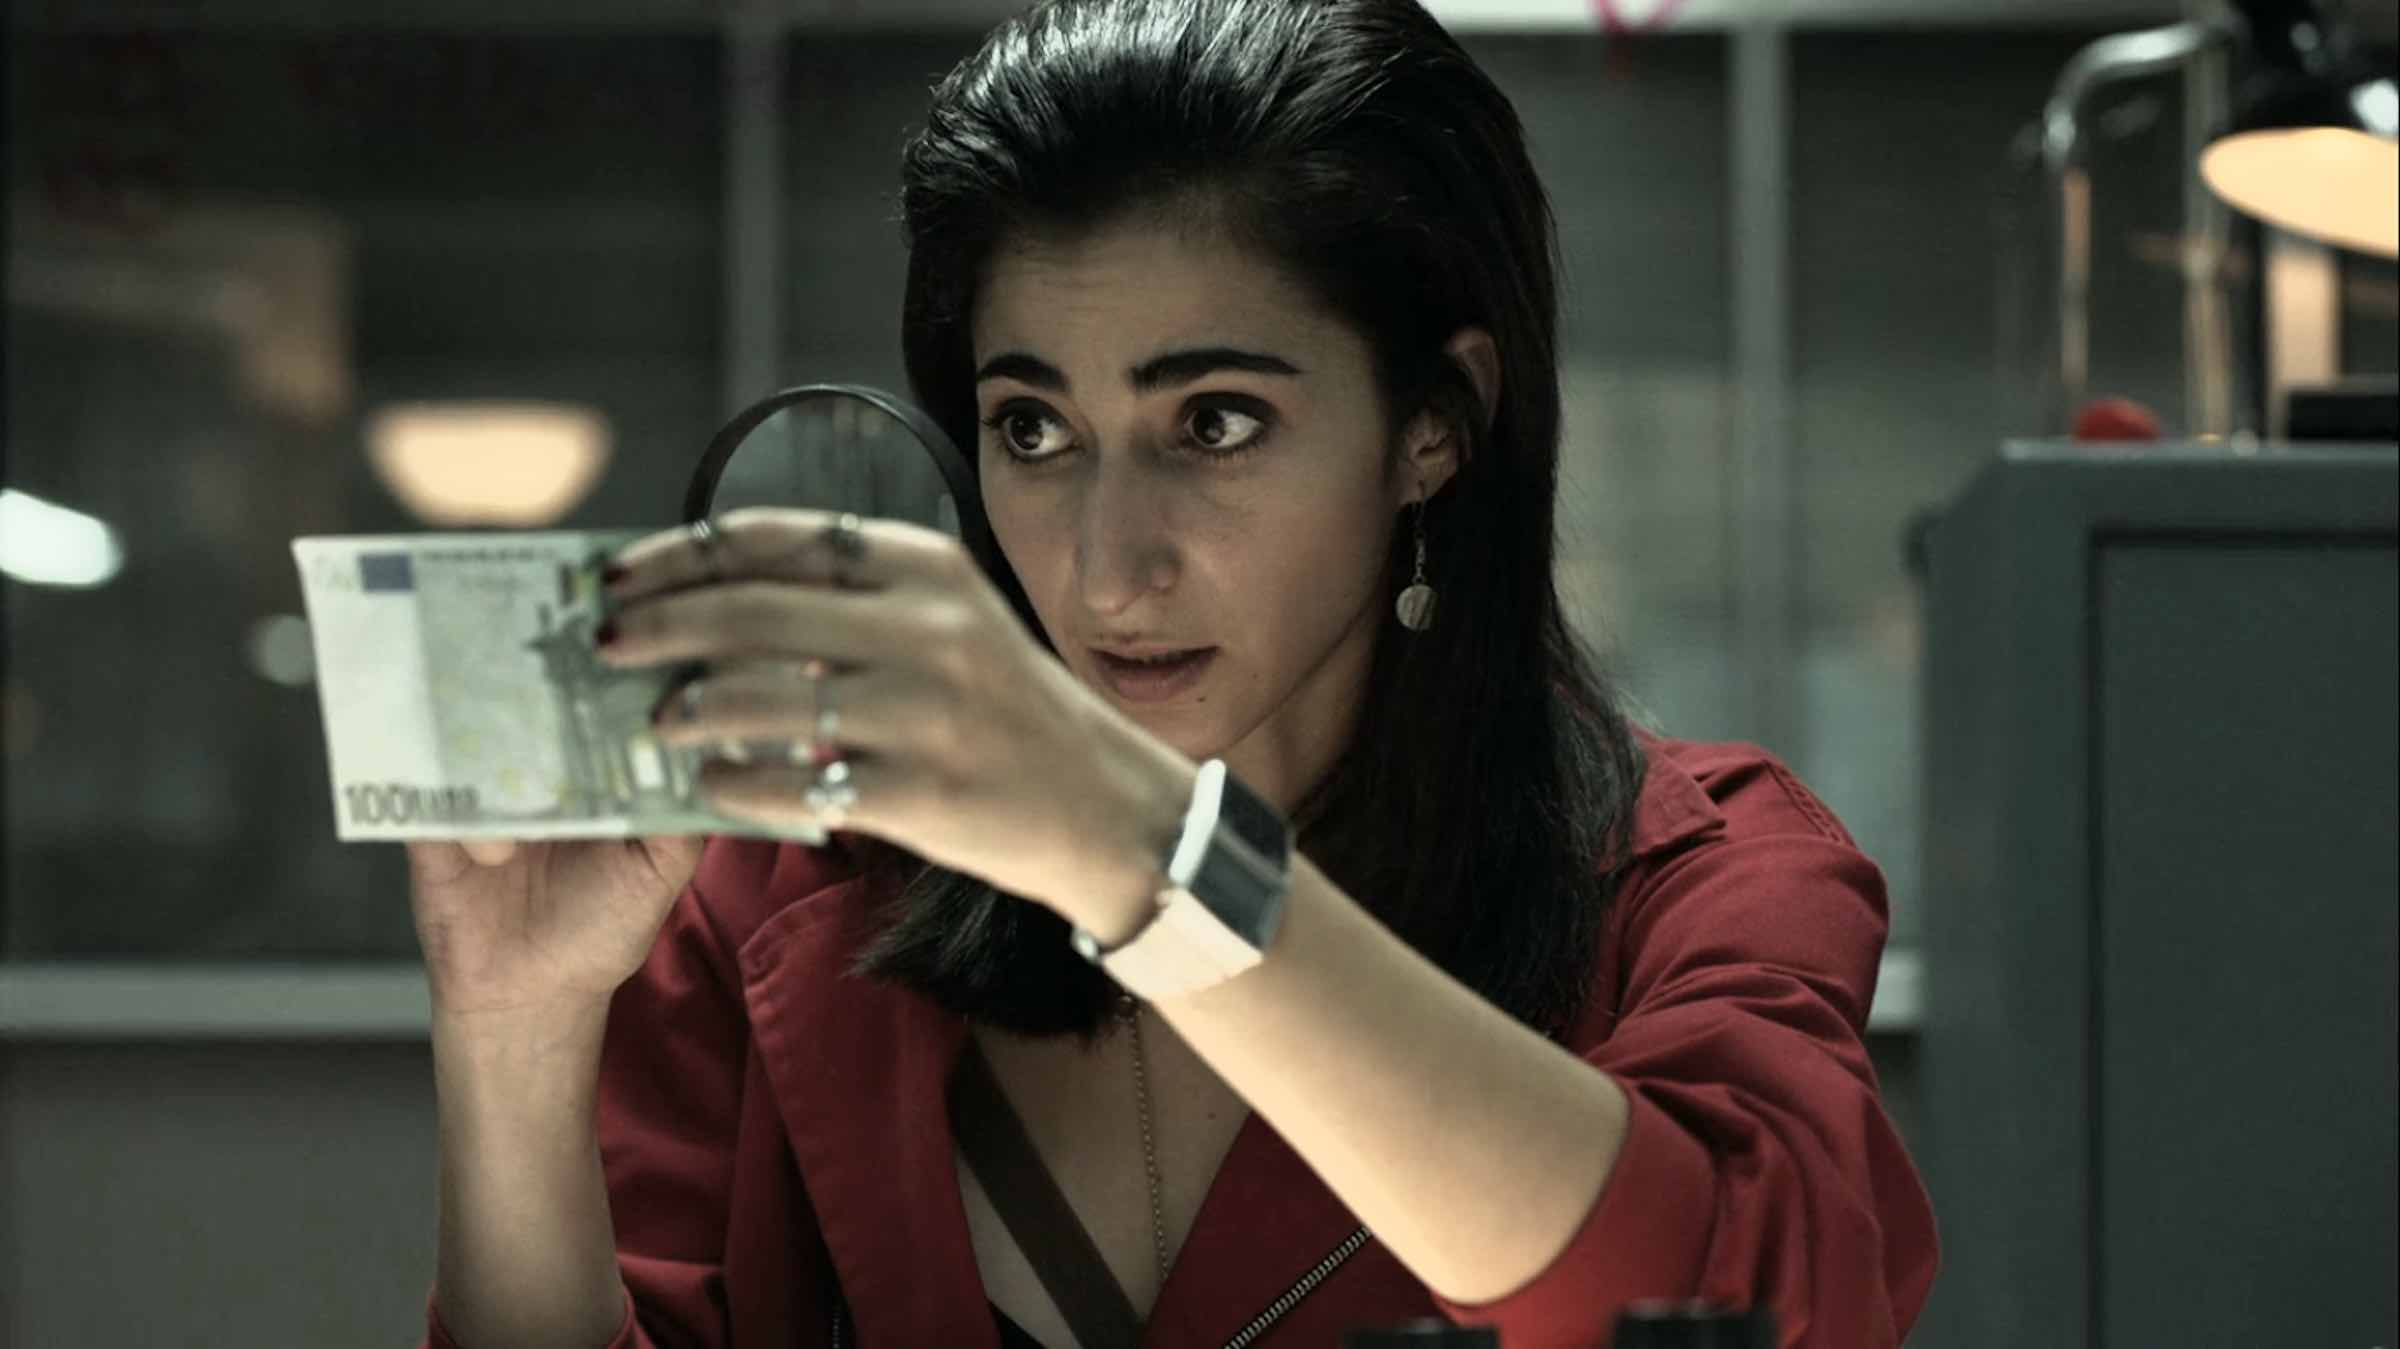 The Kenyan Nairobi is one of the best La Casa de Papel Characters